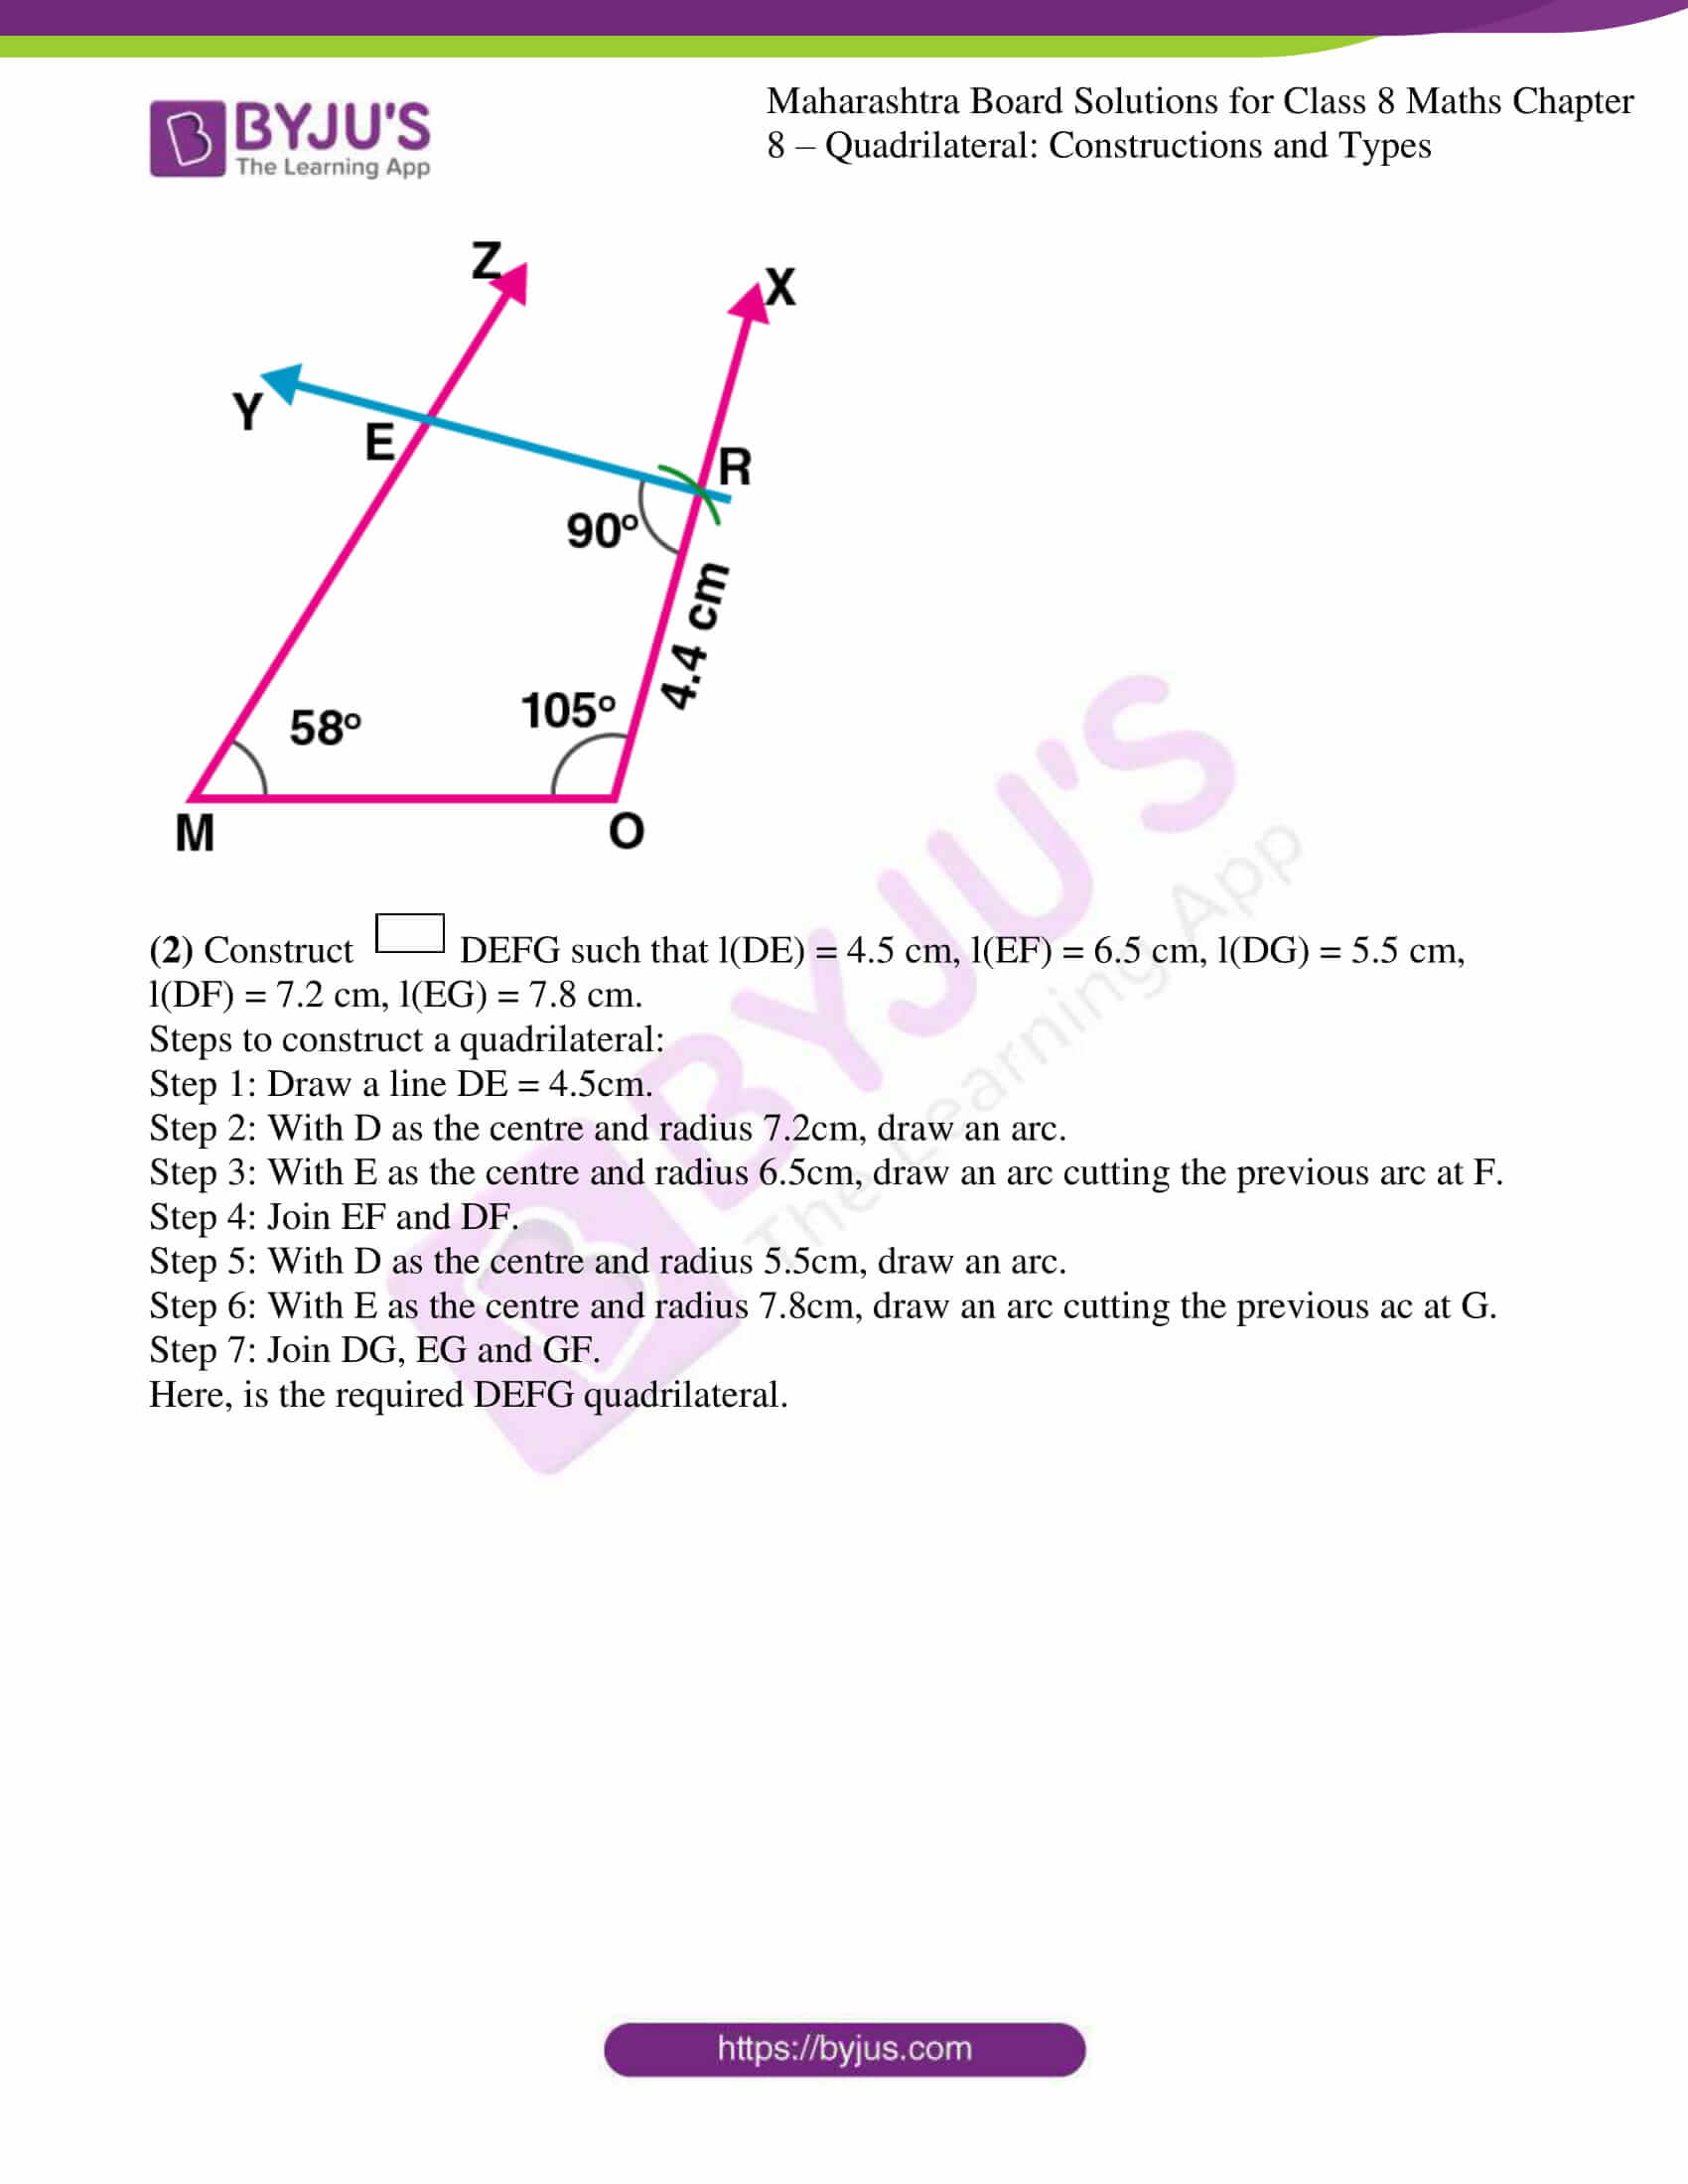 msbshse sol for class 8 maths chapter 8 02